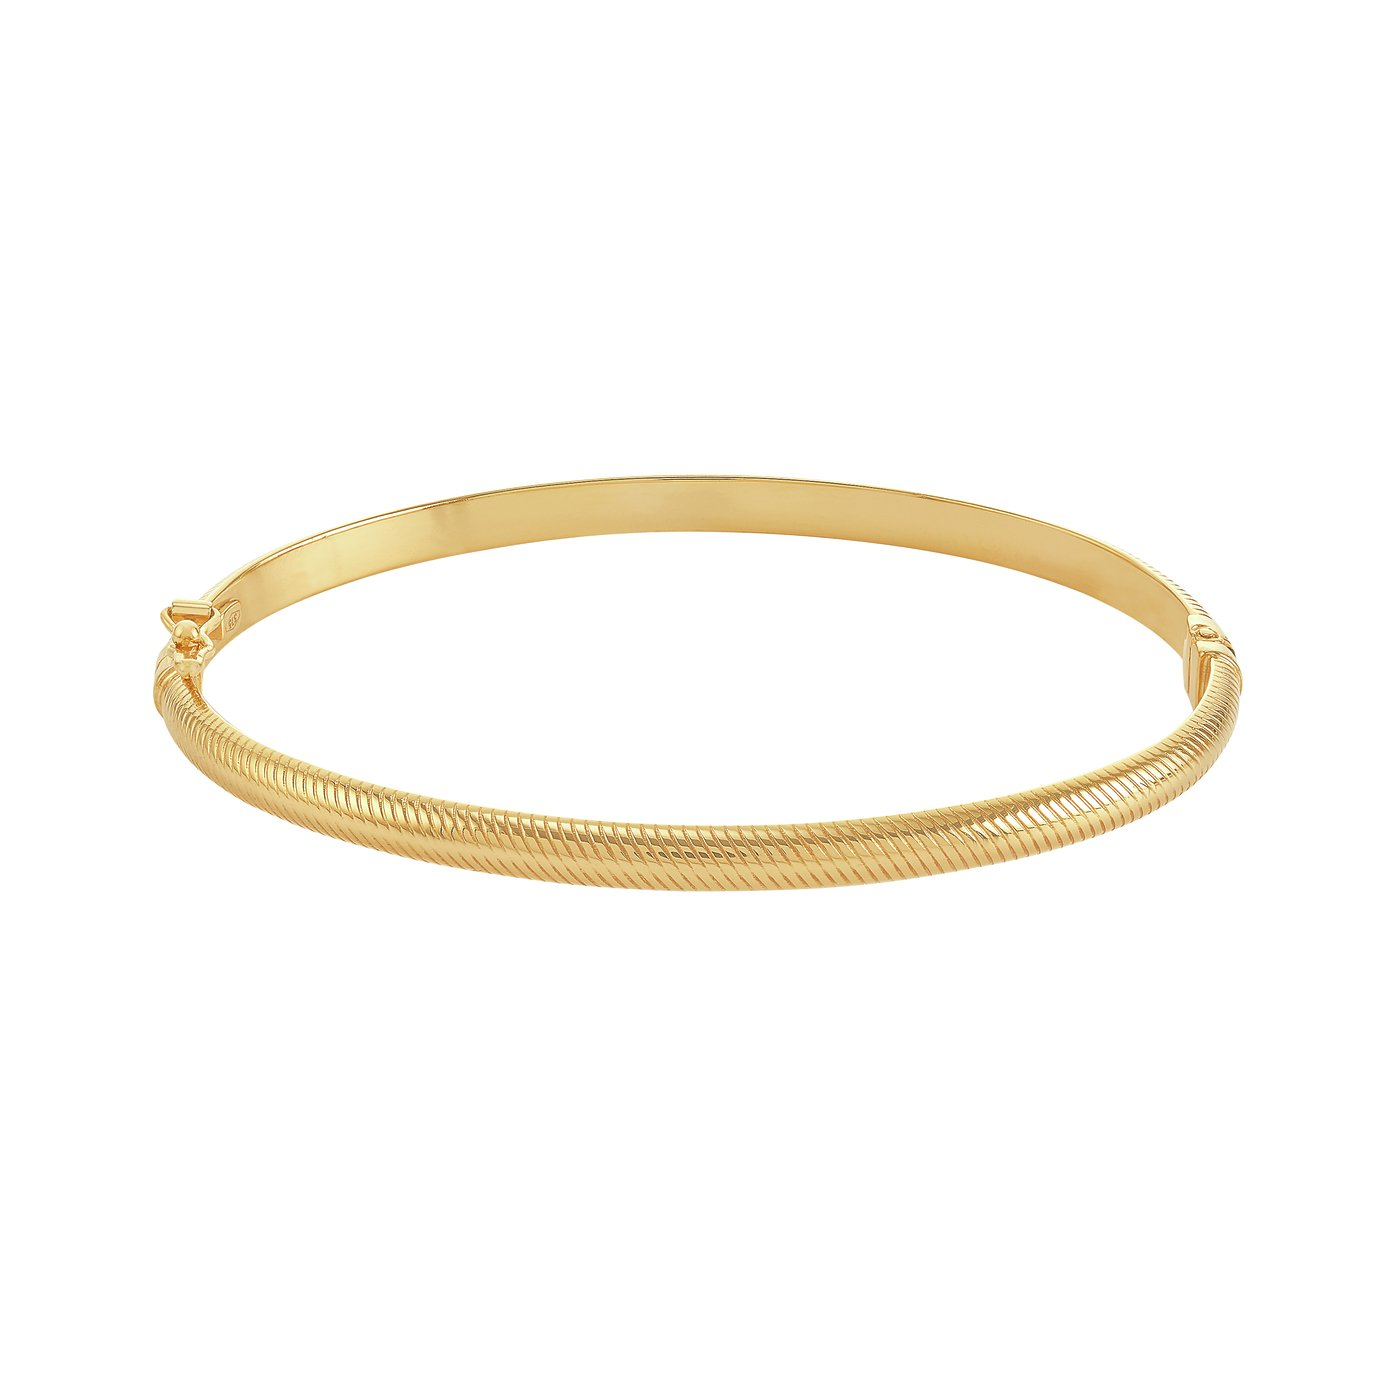 Revere 9ct Yellow Gold Textured Hinged Bracelet